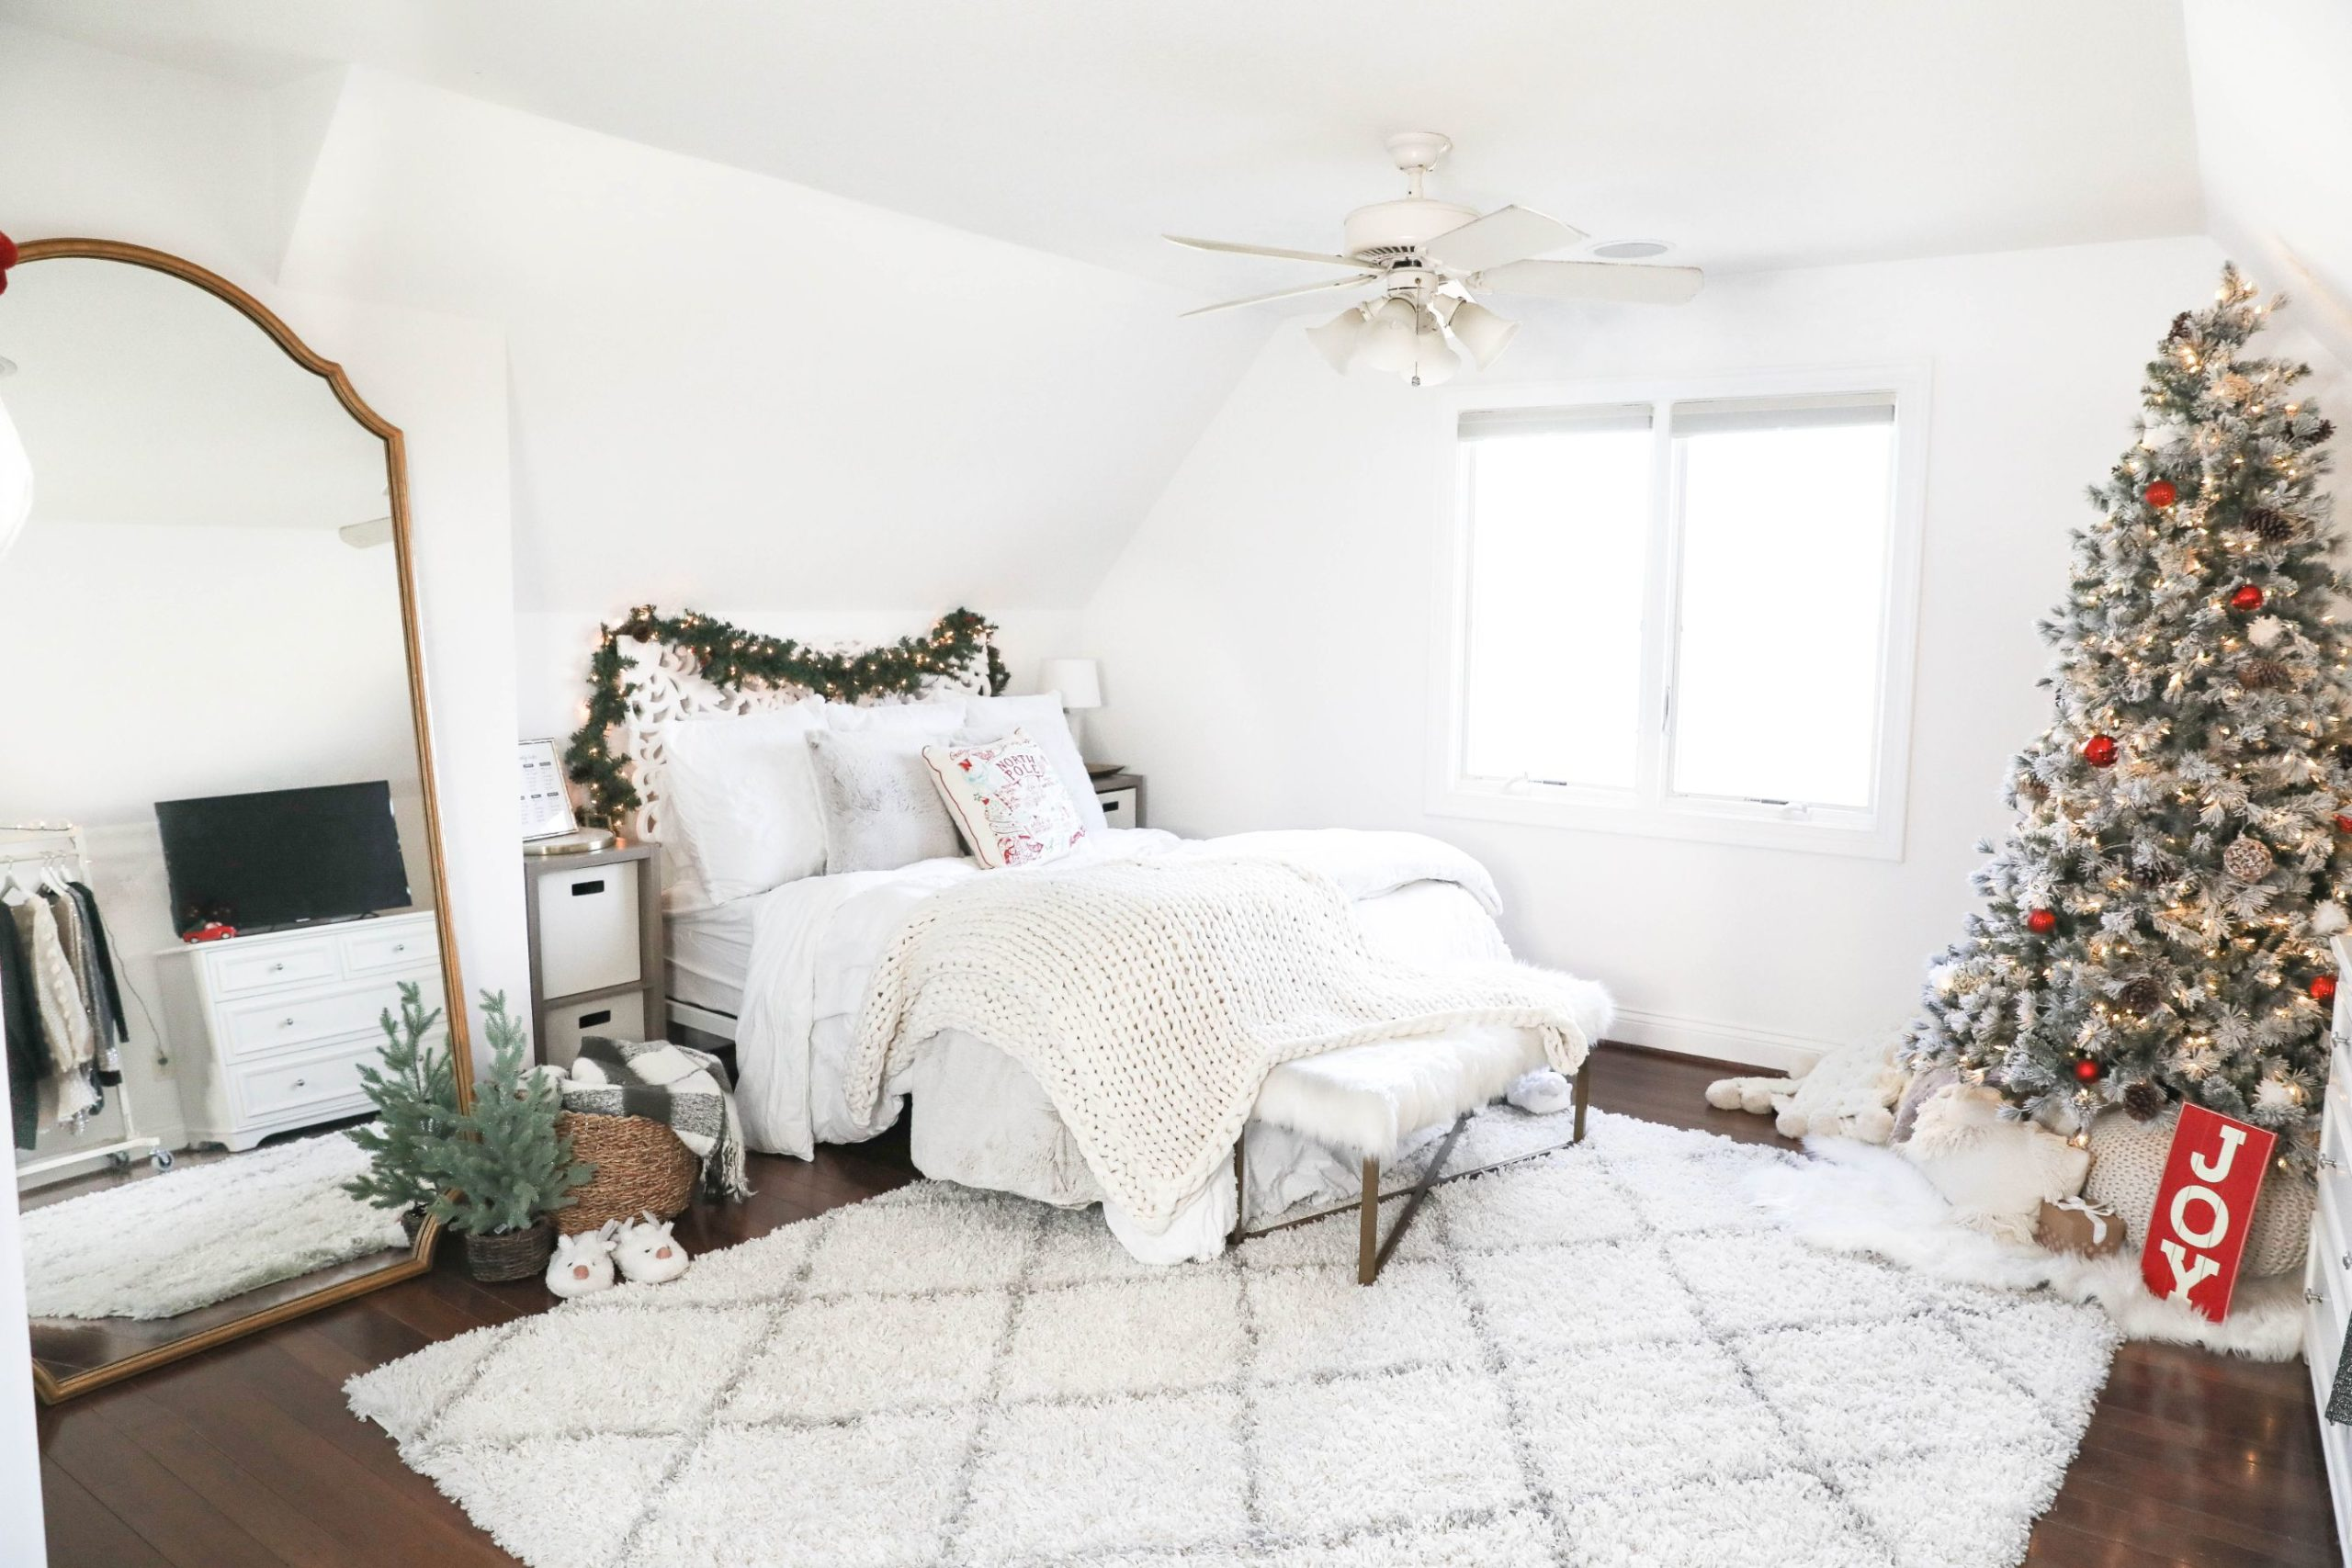 CHRISTMAS ROOM TOUR 2019 Daily Dose of Charm flocked tree home depot holiday decor interior photography Lauren Lindmark